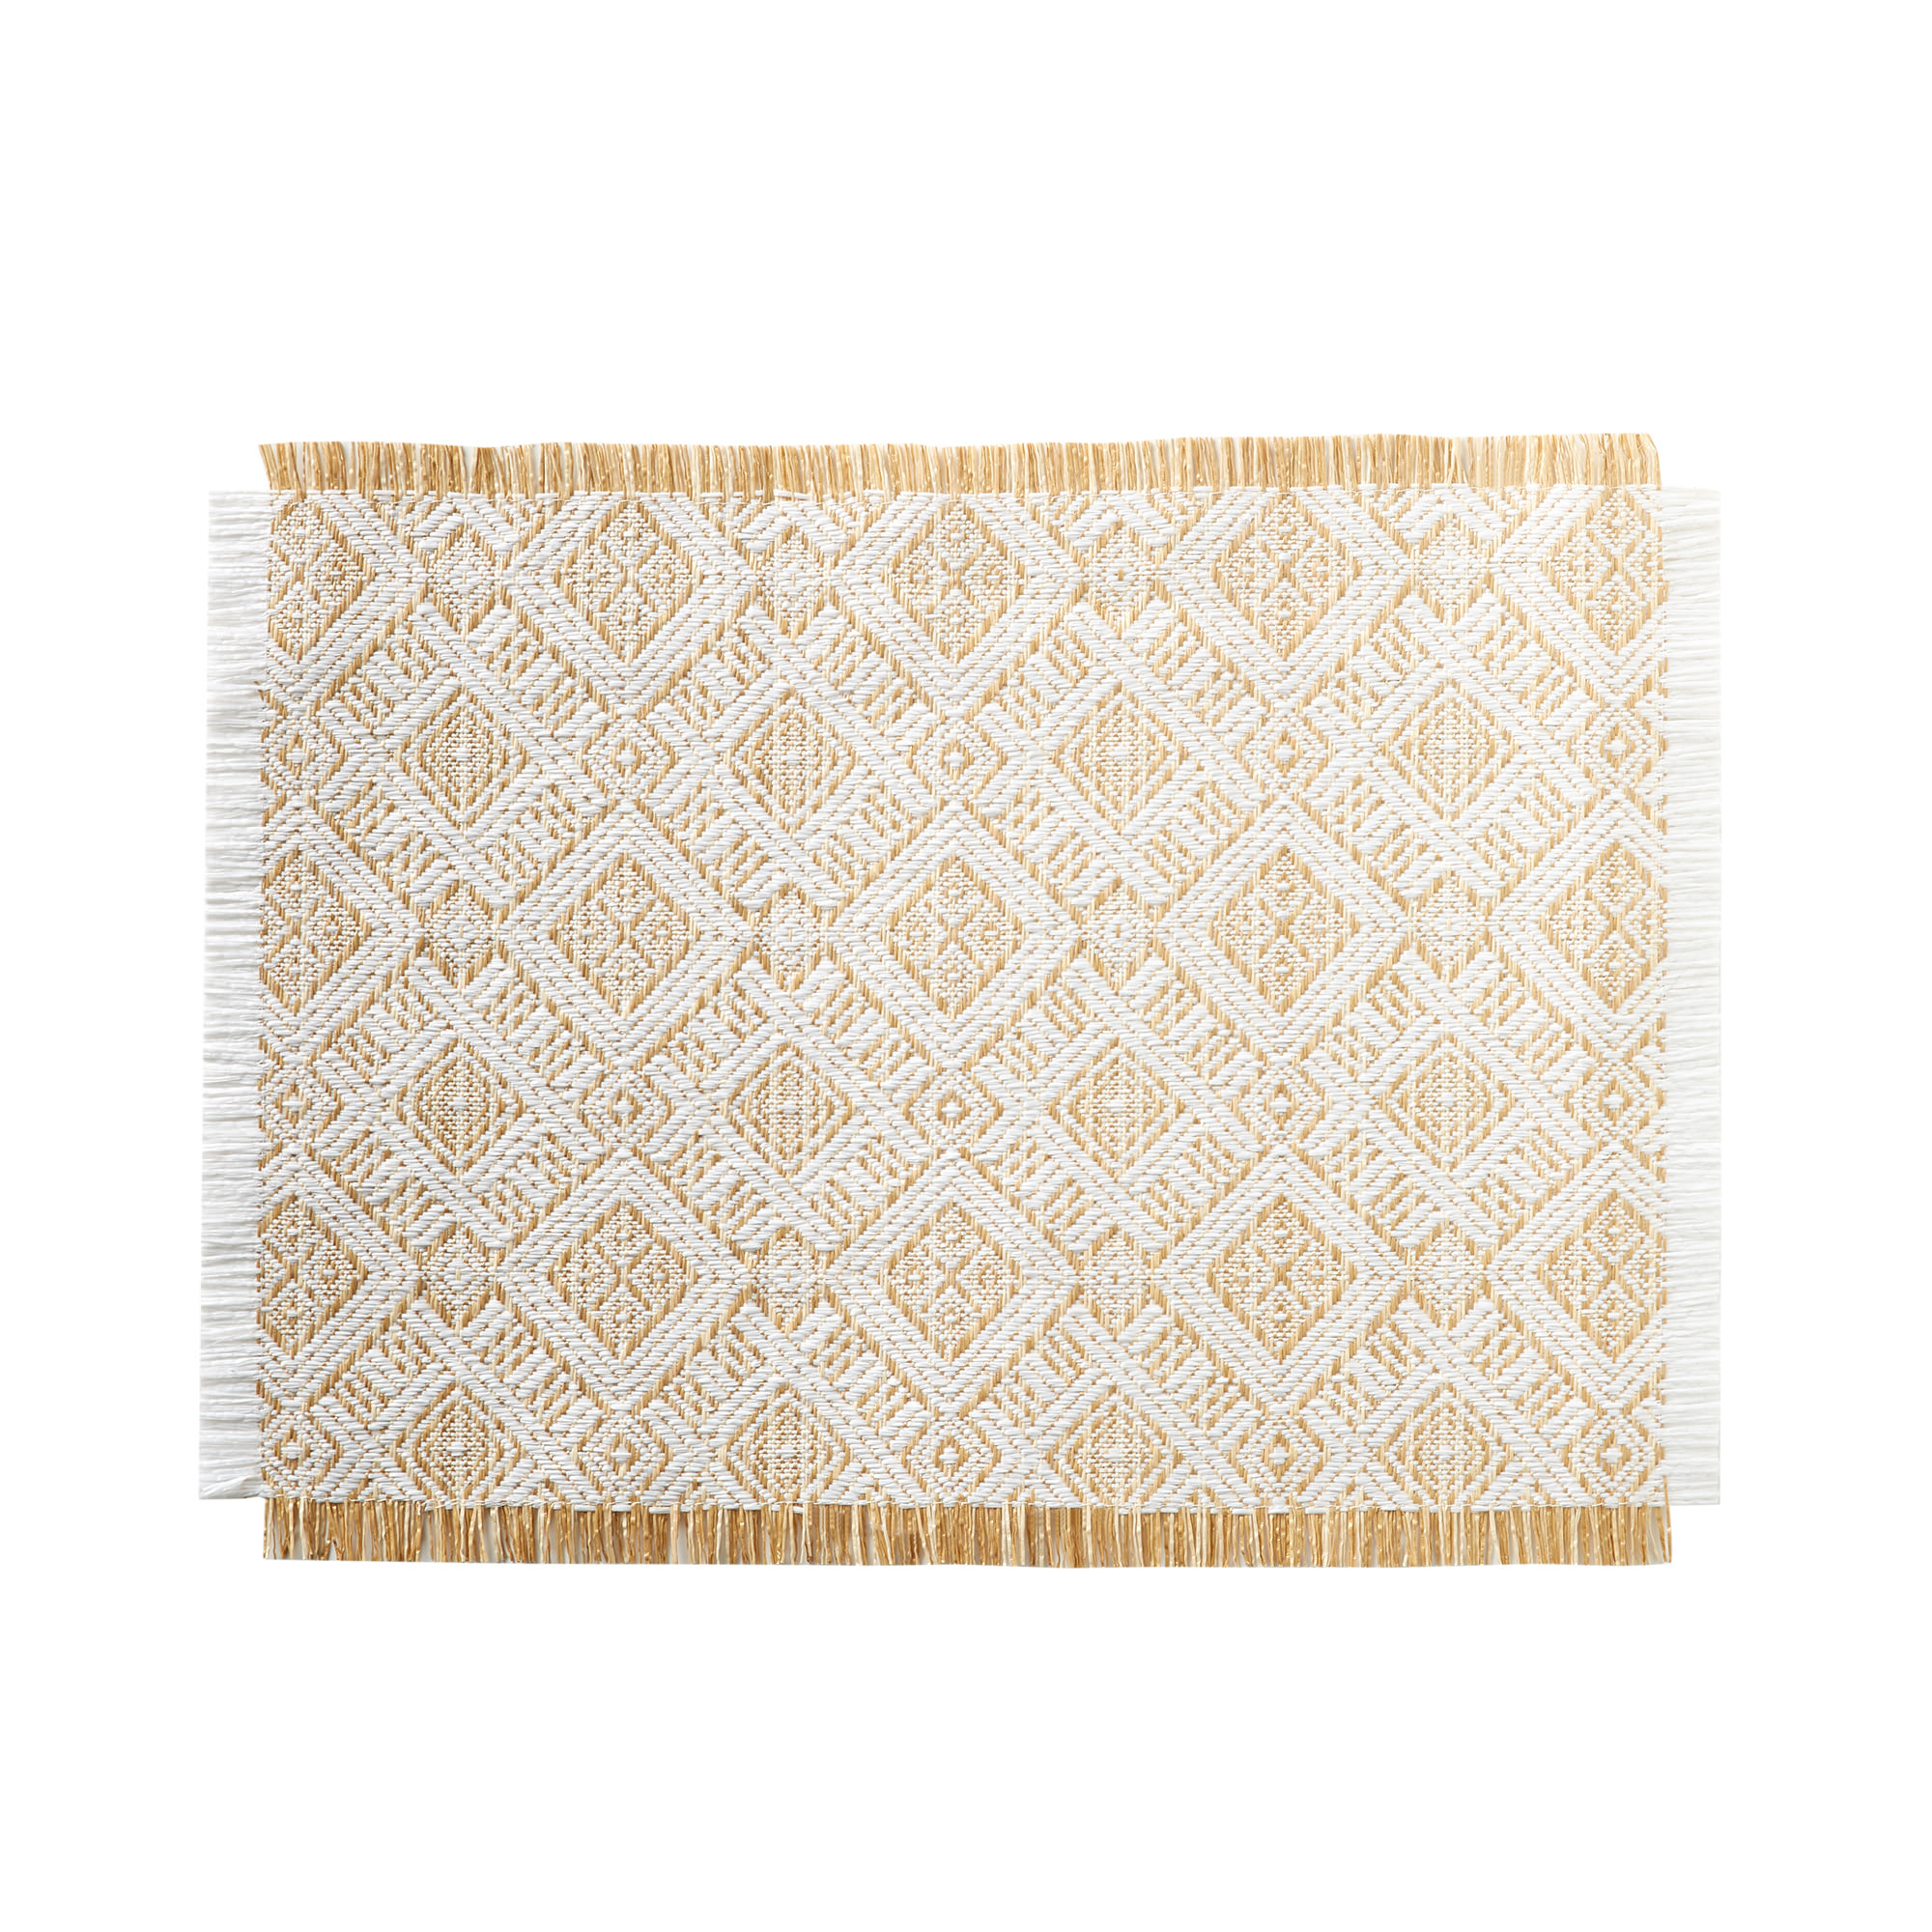 Salisbury & Co Ethnic Rectangular Placemat 33x45cm White